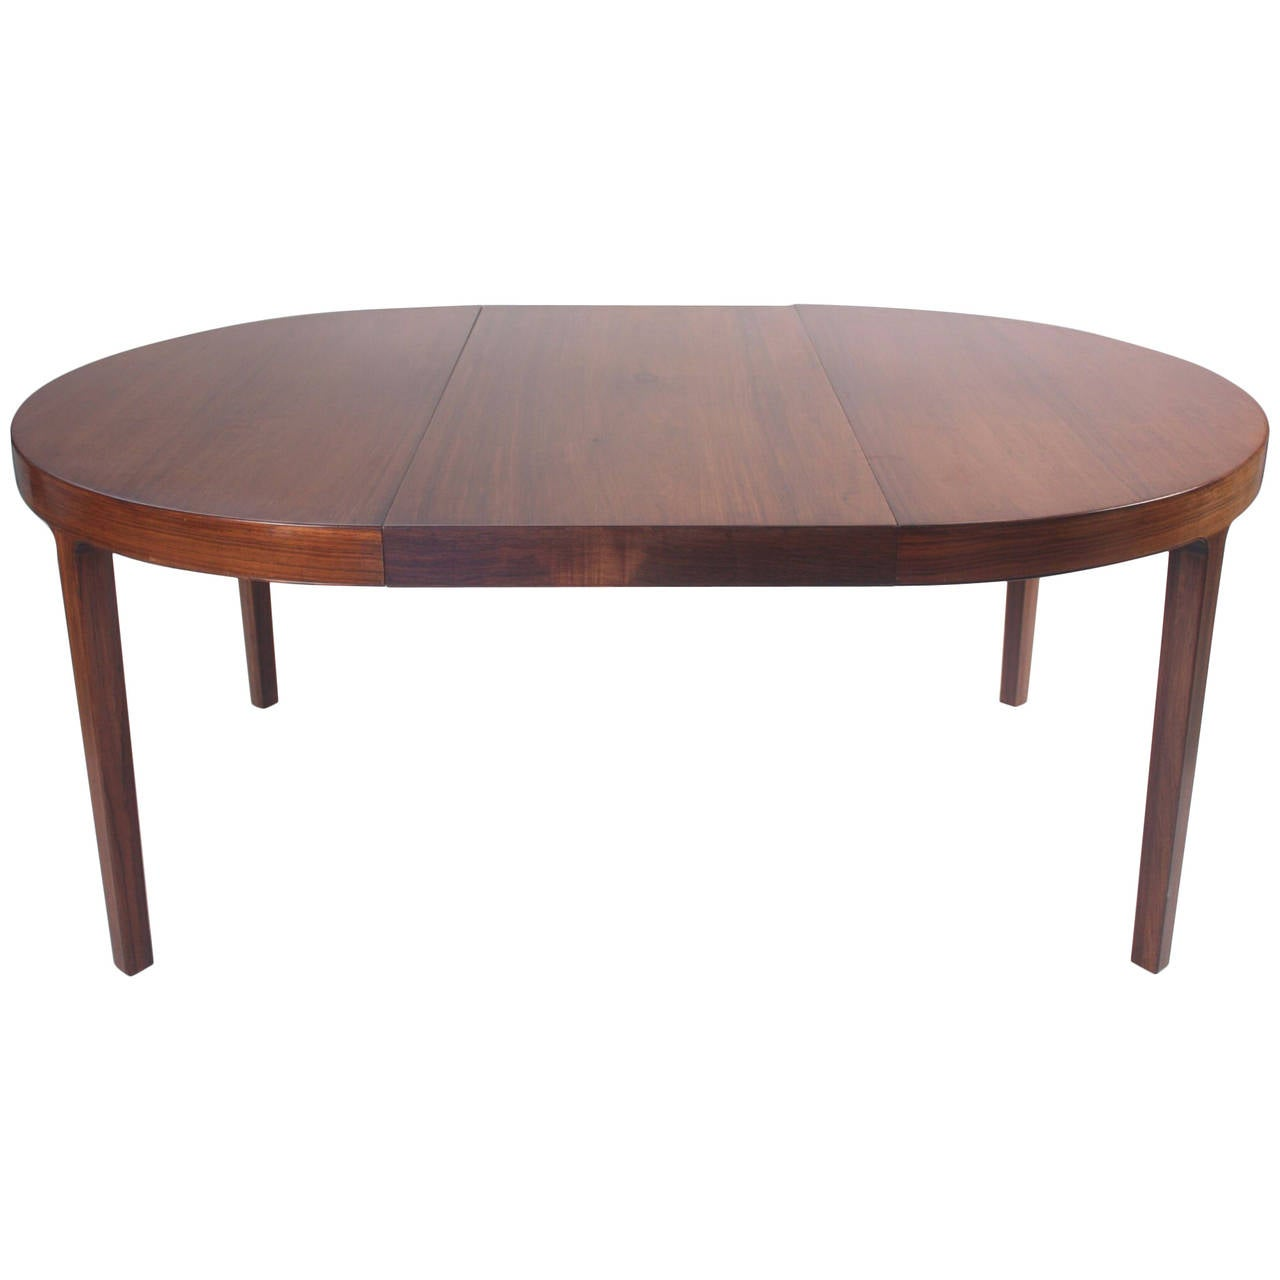 Ole Wanscher Dining Table, Denmark, circa 1960s For Sale